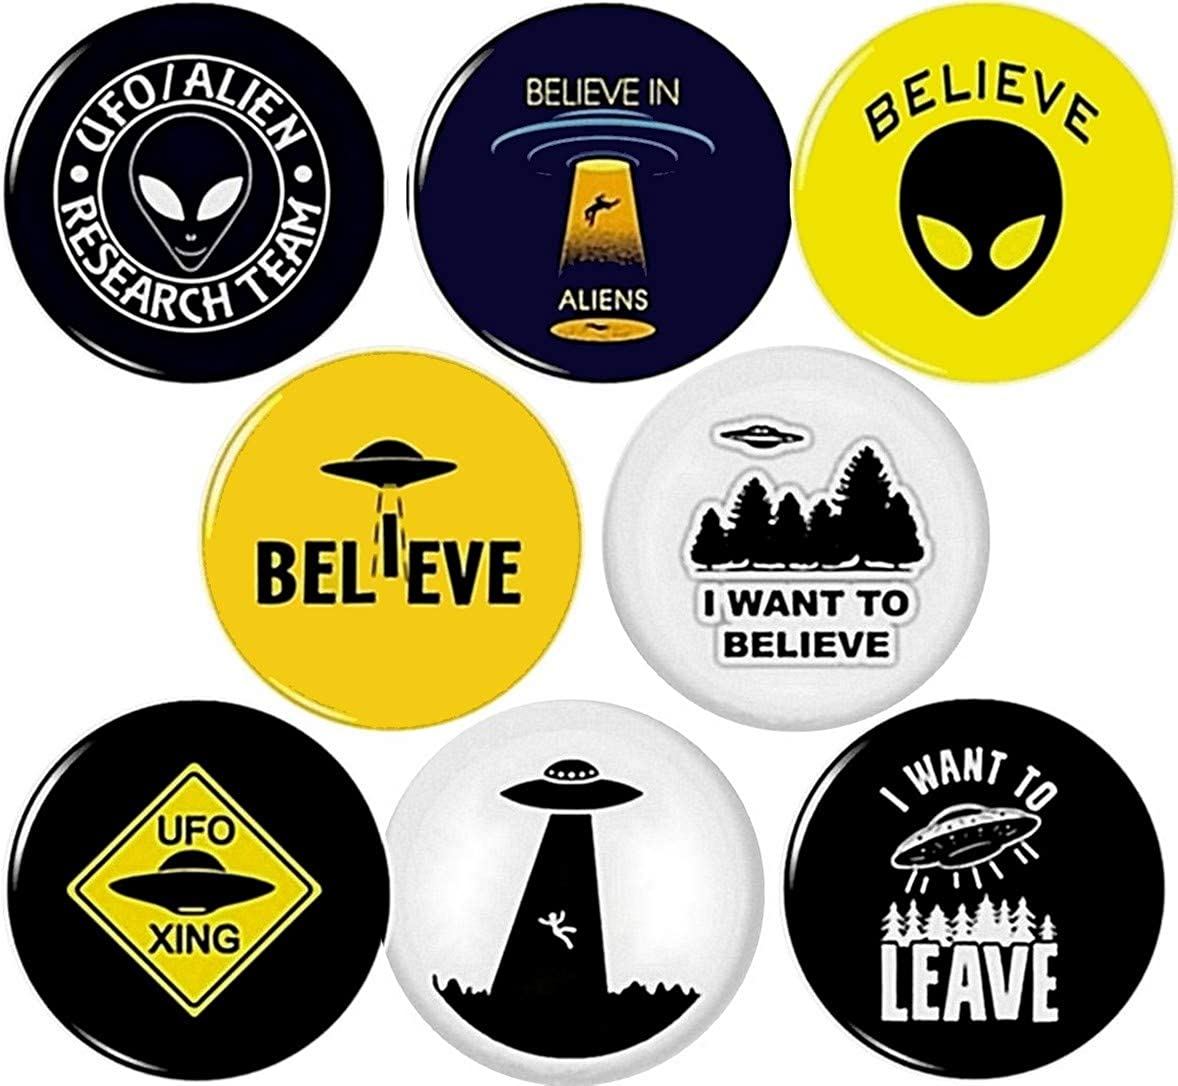 Panic Buttons UFO 8 New Button pin Badges Alien Extraterrestrial I Want to Believe Leave xing